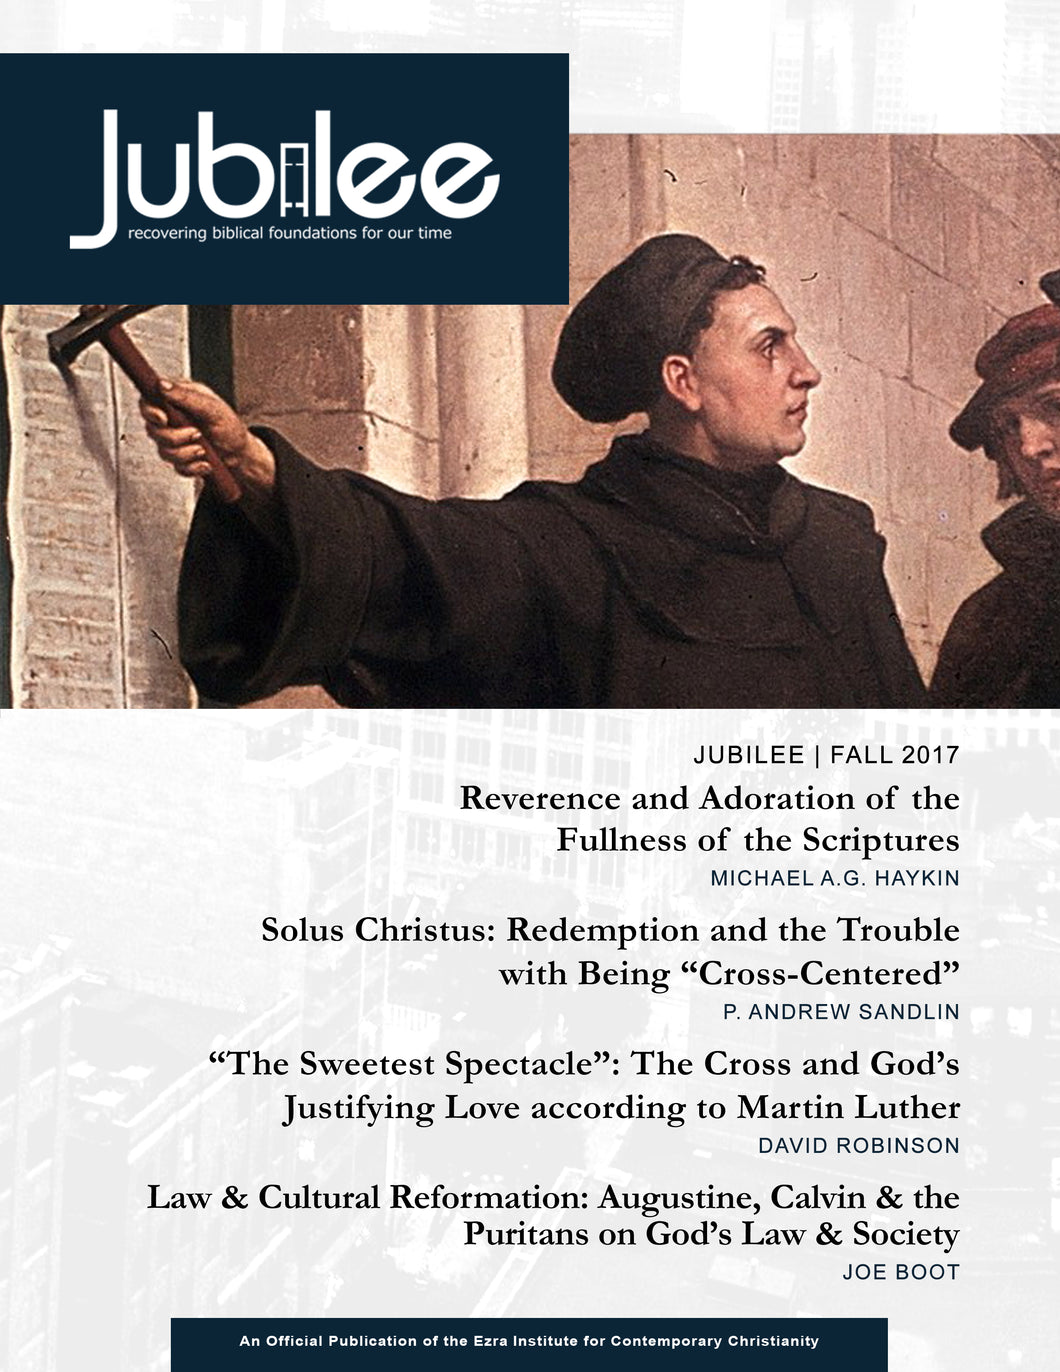 500 Years of Reformation - Fall 2017 - Digital Download / Online Reader